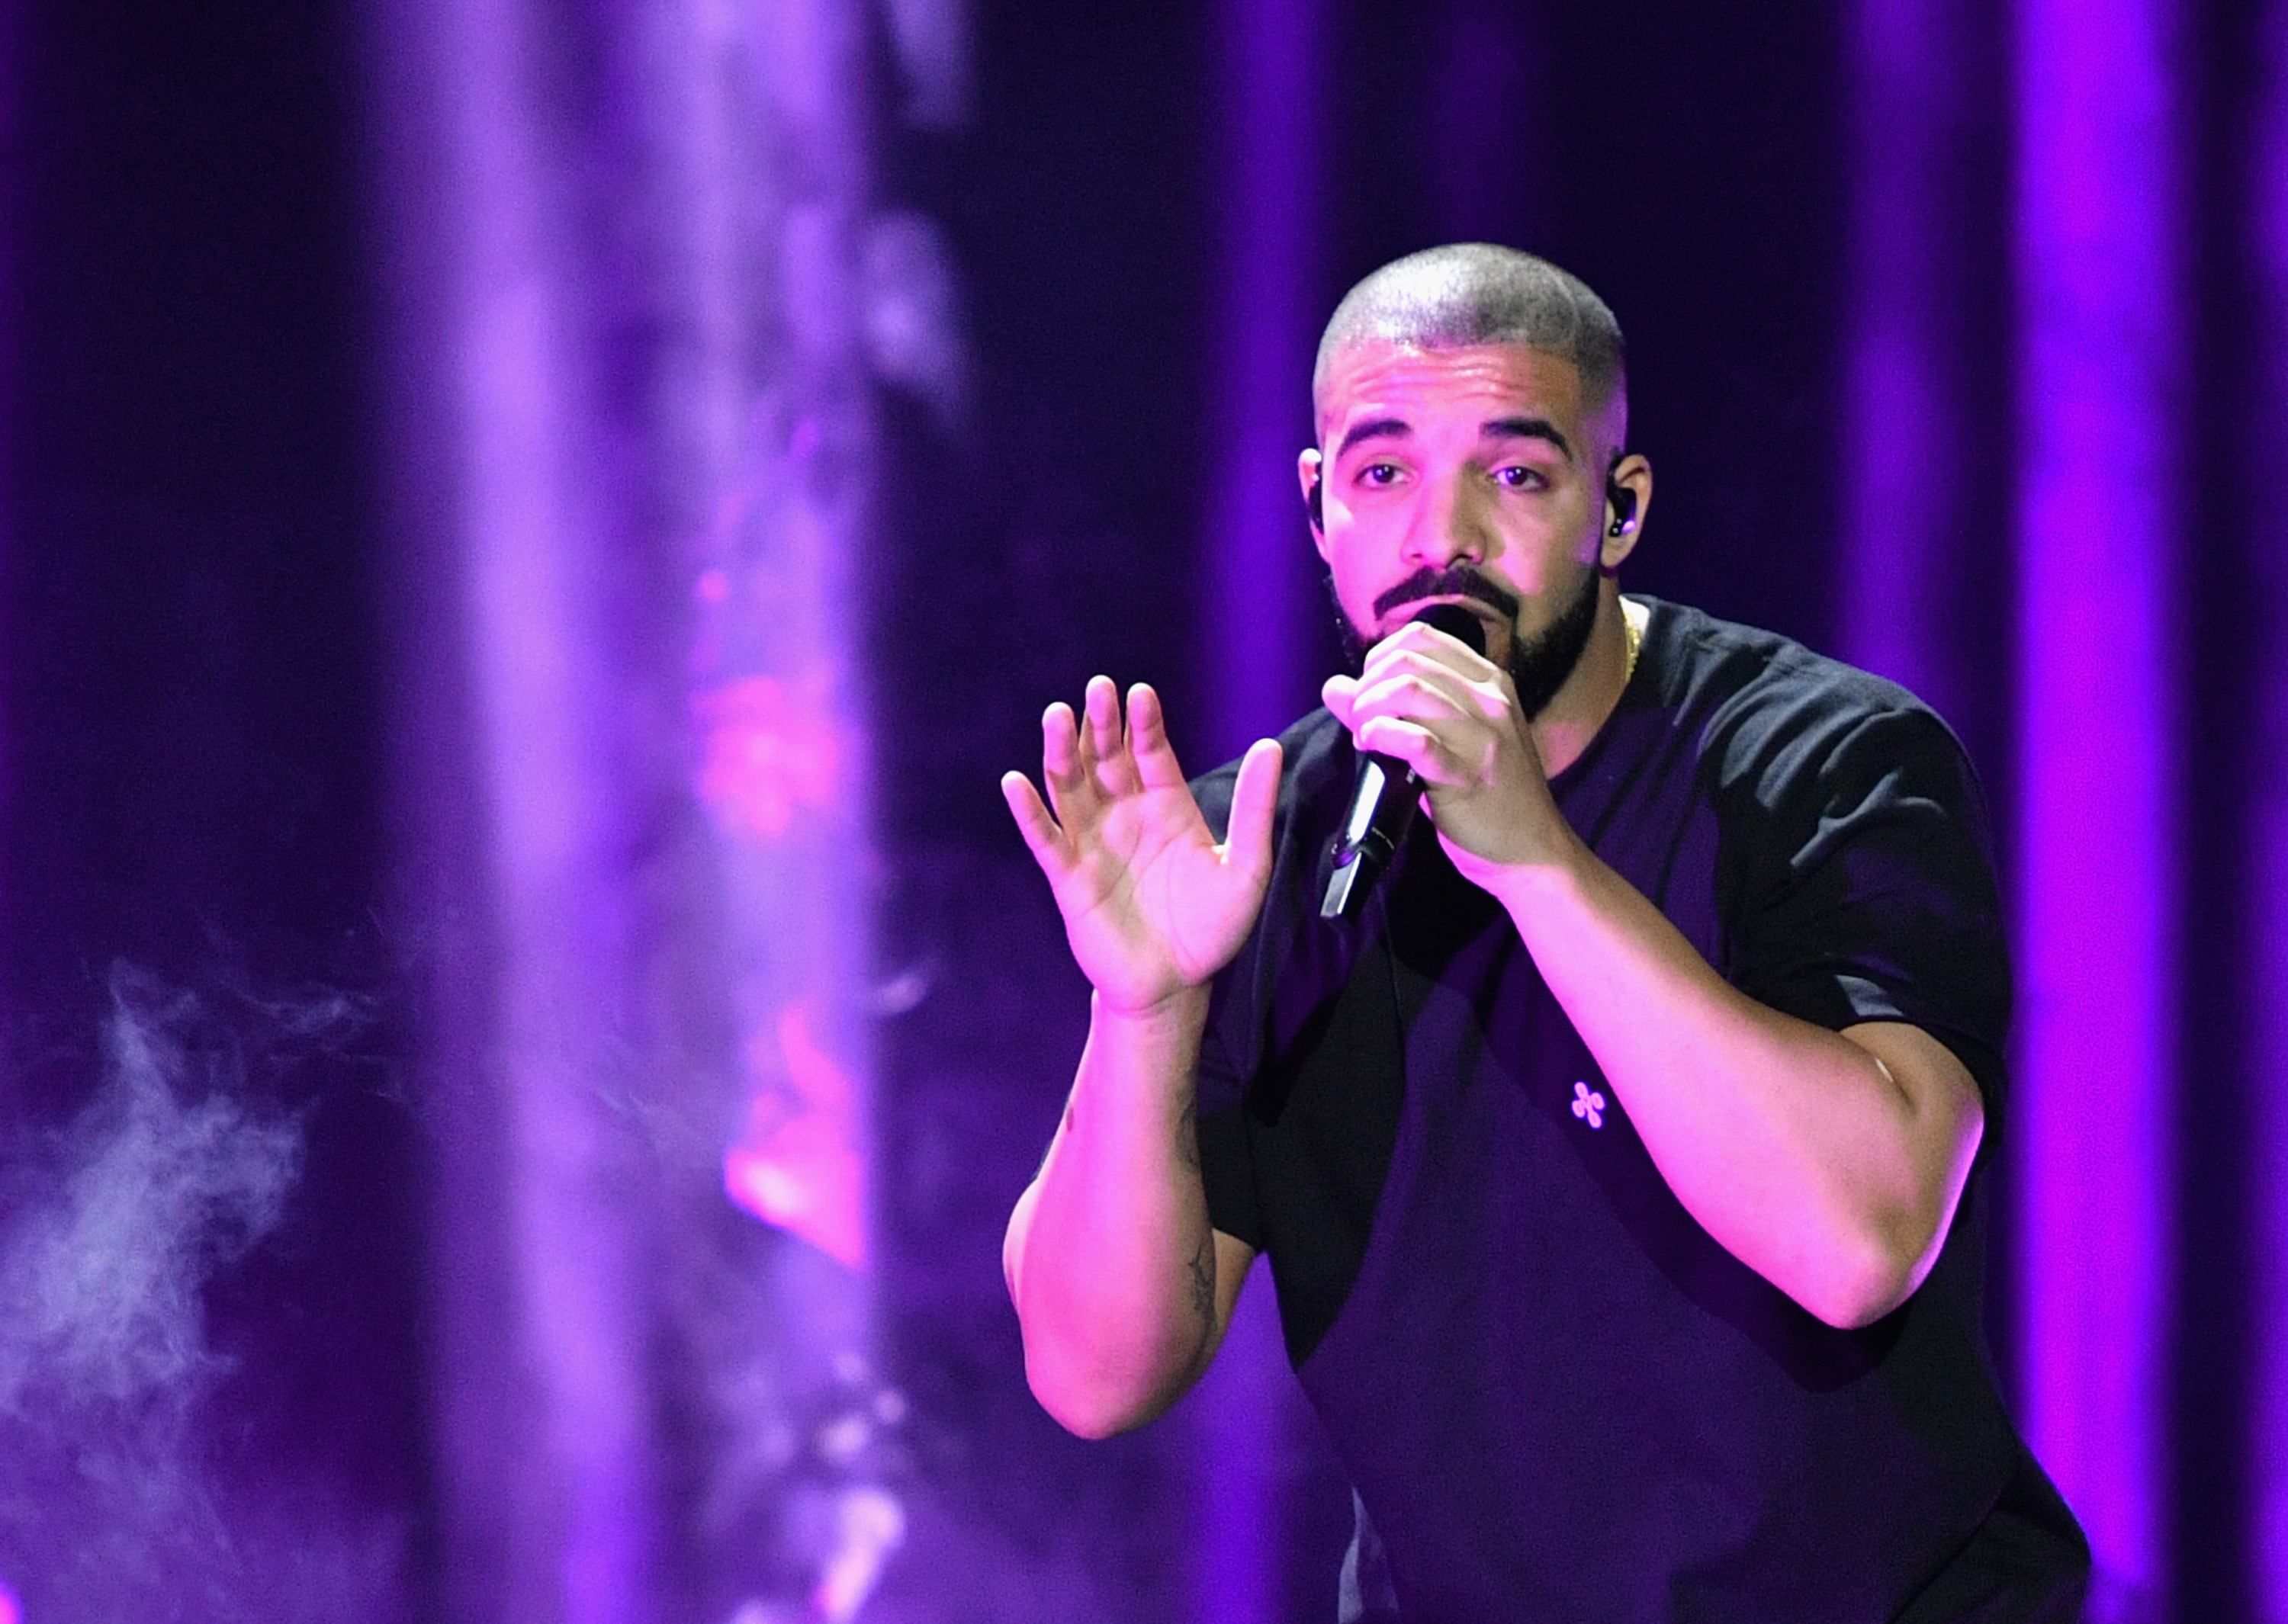 LAS VEGAS, NV - SEPTEMBER 23: Recording artist Drake performs onstage at the 2016 iHeartRadio Music Festival at T-Mobile Arena on September 23, 2016 in Las Vegas, Nevada. (Photo by Mike Windle/Getty Images for iHeartMedia)